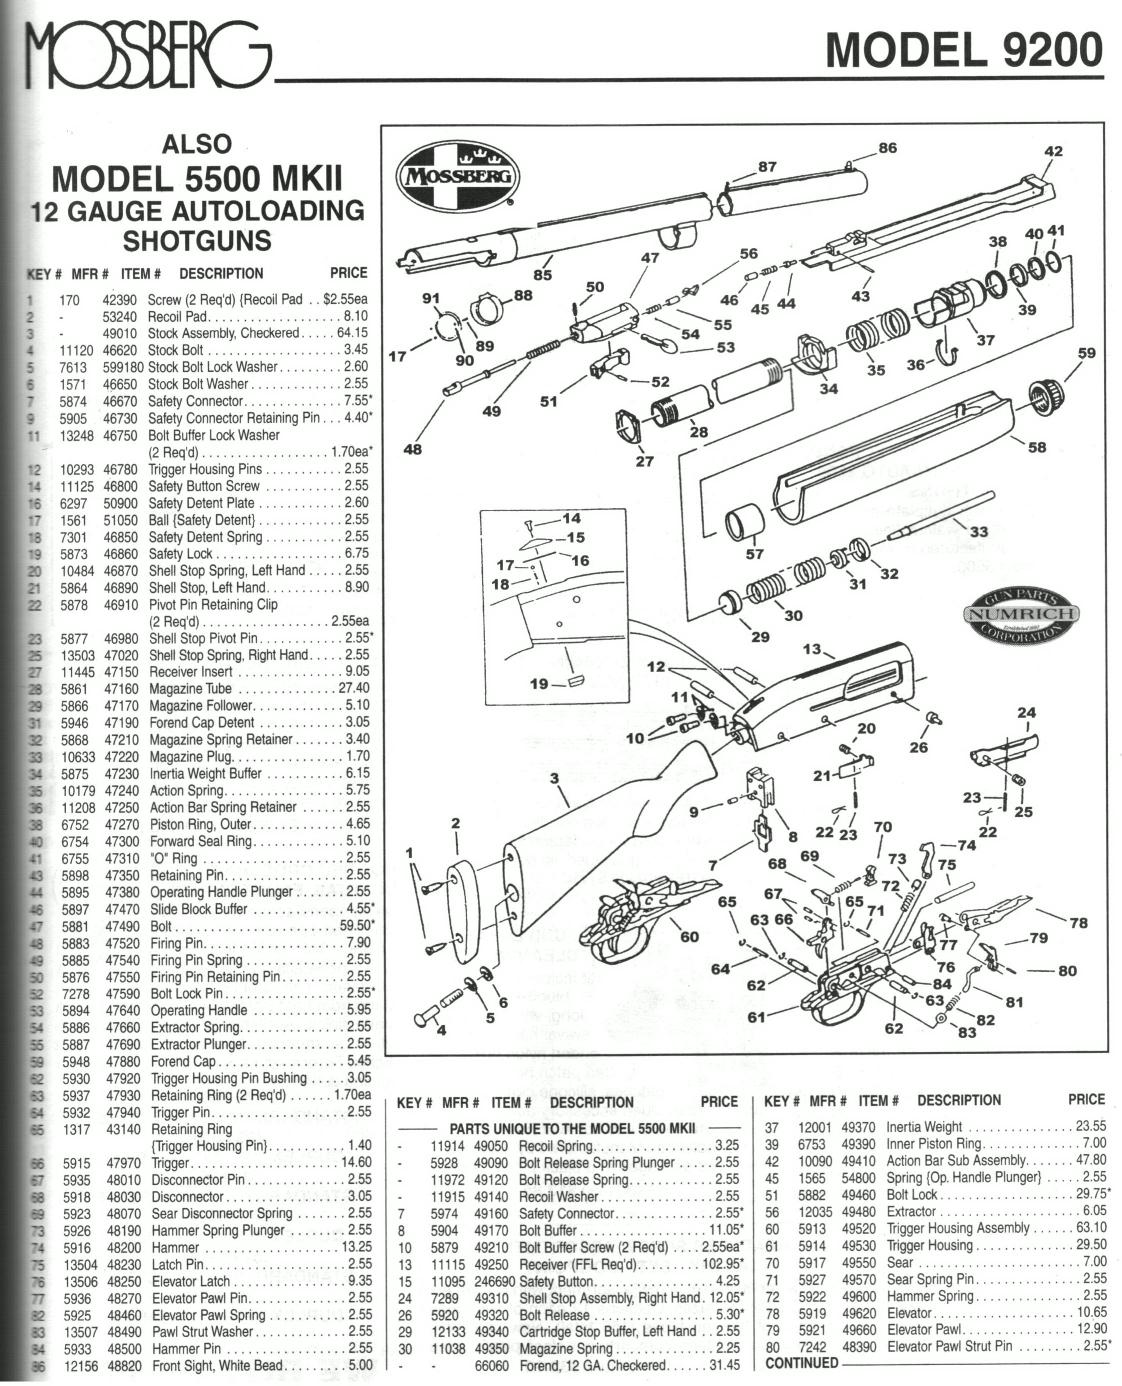 49512d1463258747-wtb-mossberg-9200-semi-auto-parts-mossberg_9200 Walther P Schematic on walther p99 diagram, gun silencer schematic, walther g22 parts diagram, walther p1 schematic, walther sp22 m1 breakdown diagram, walther p88 schematic, walther 9mm schematic, walther p38, m&p 9mm parts schematic, walther ppk, kahr cw9 schematic, uzi schematic, walther pp schematic, walther pk380 schematic, walther p99 accessories, walther pps schematic, walther ppq schematic, m&p pistol schematic,